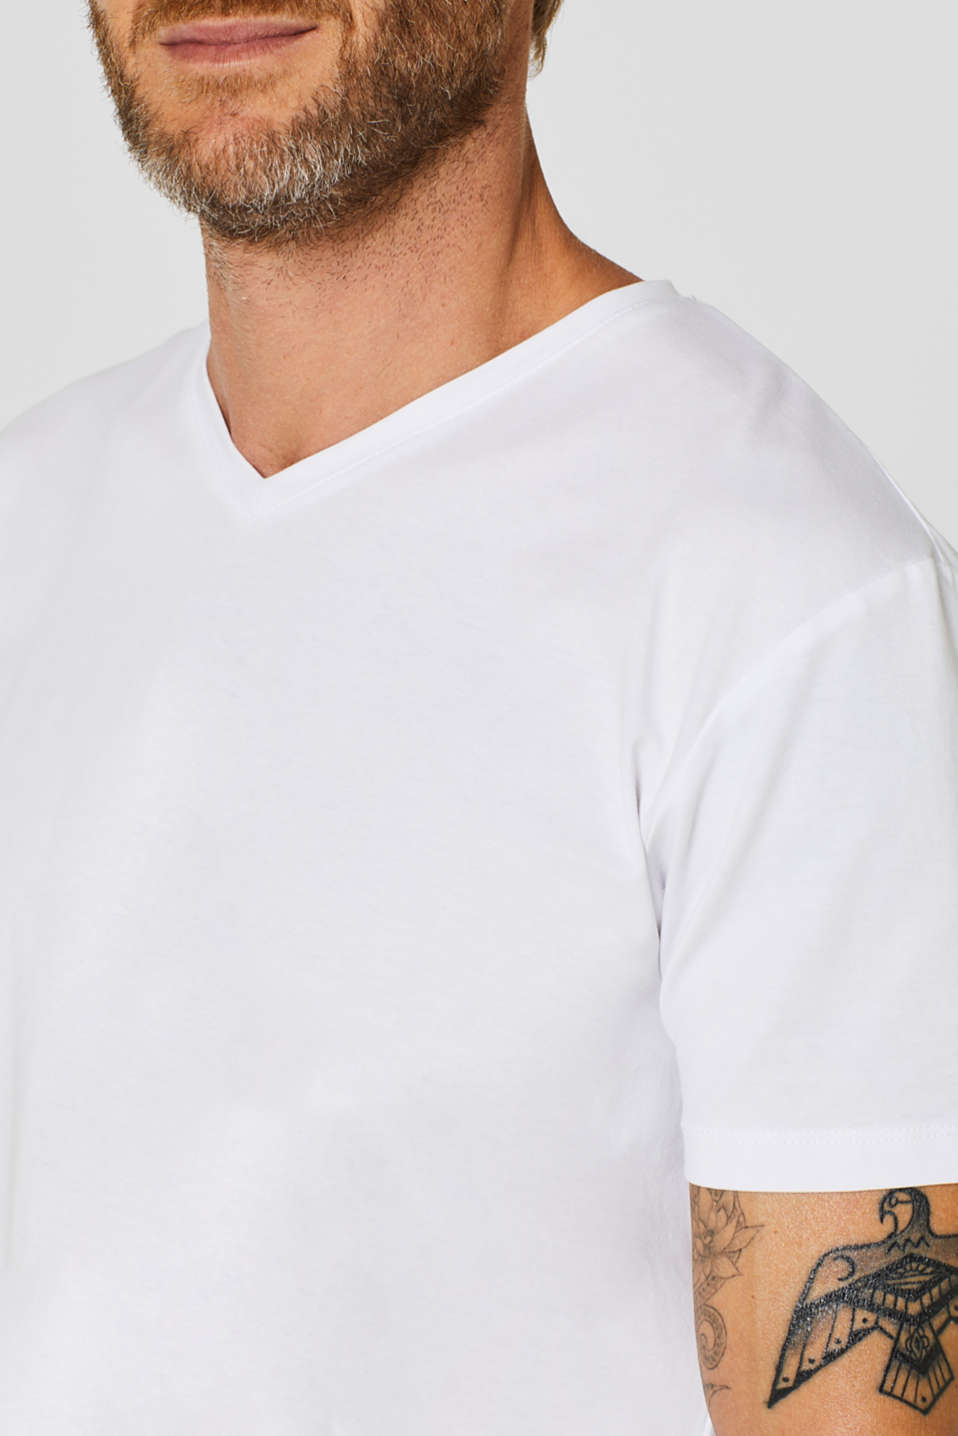 Jersey T-shirt in stretch cotton, WHITE, detail image number 1